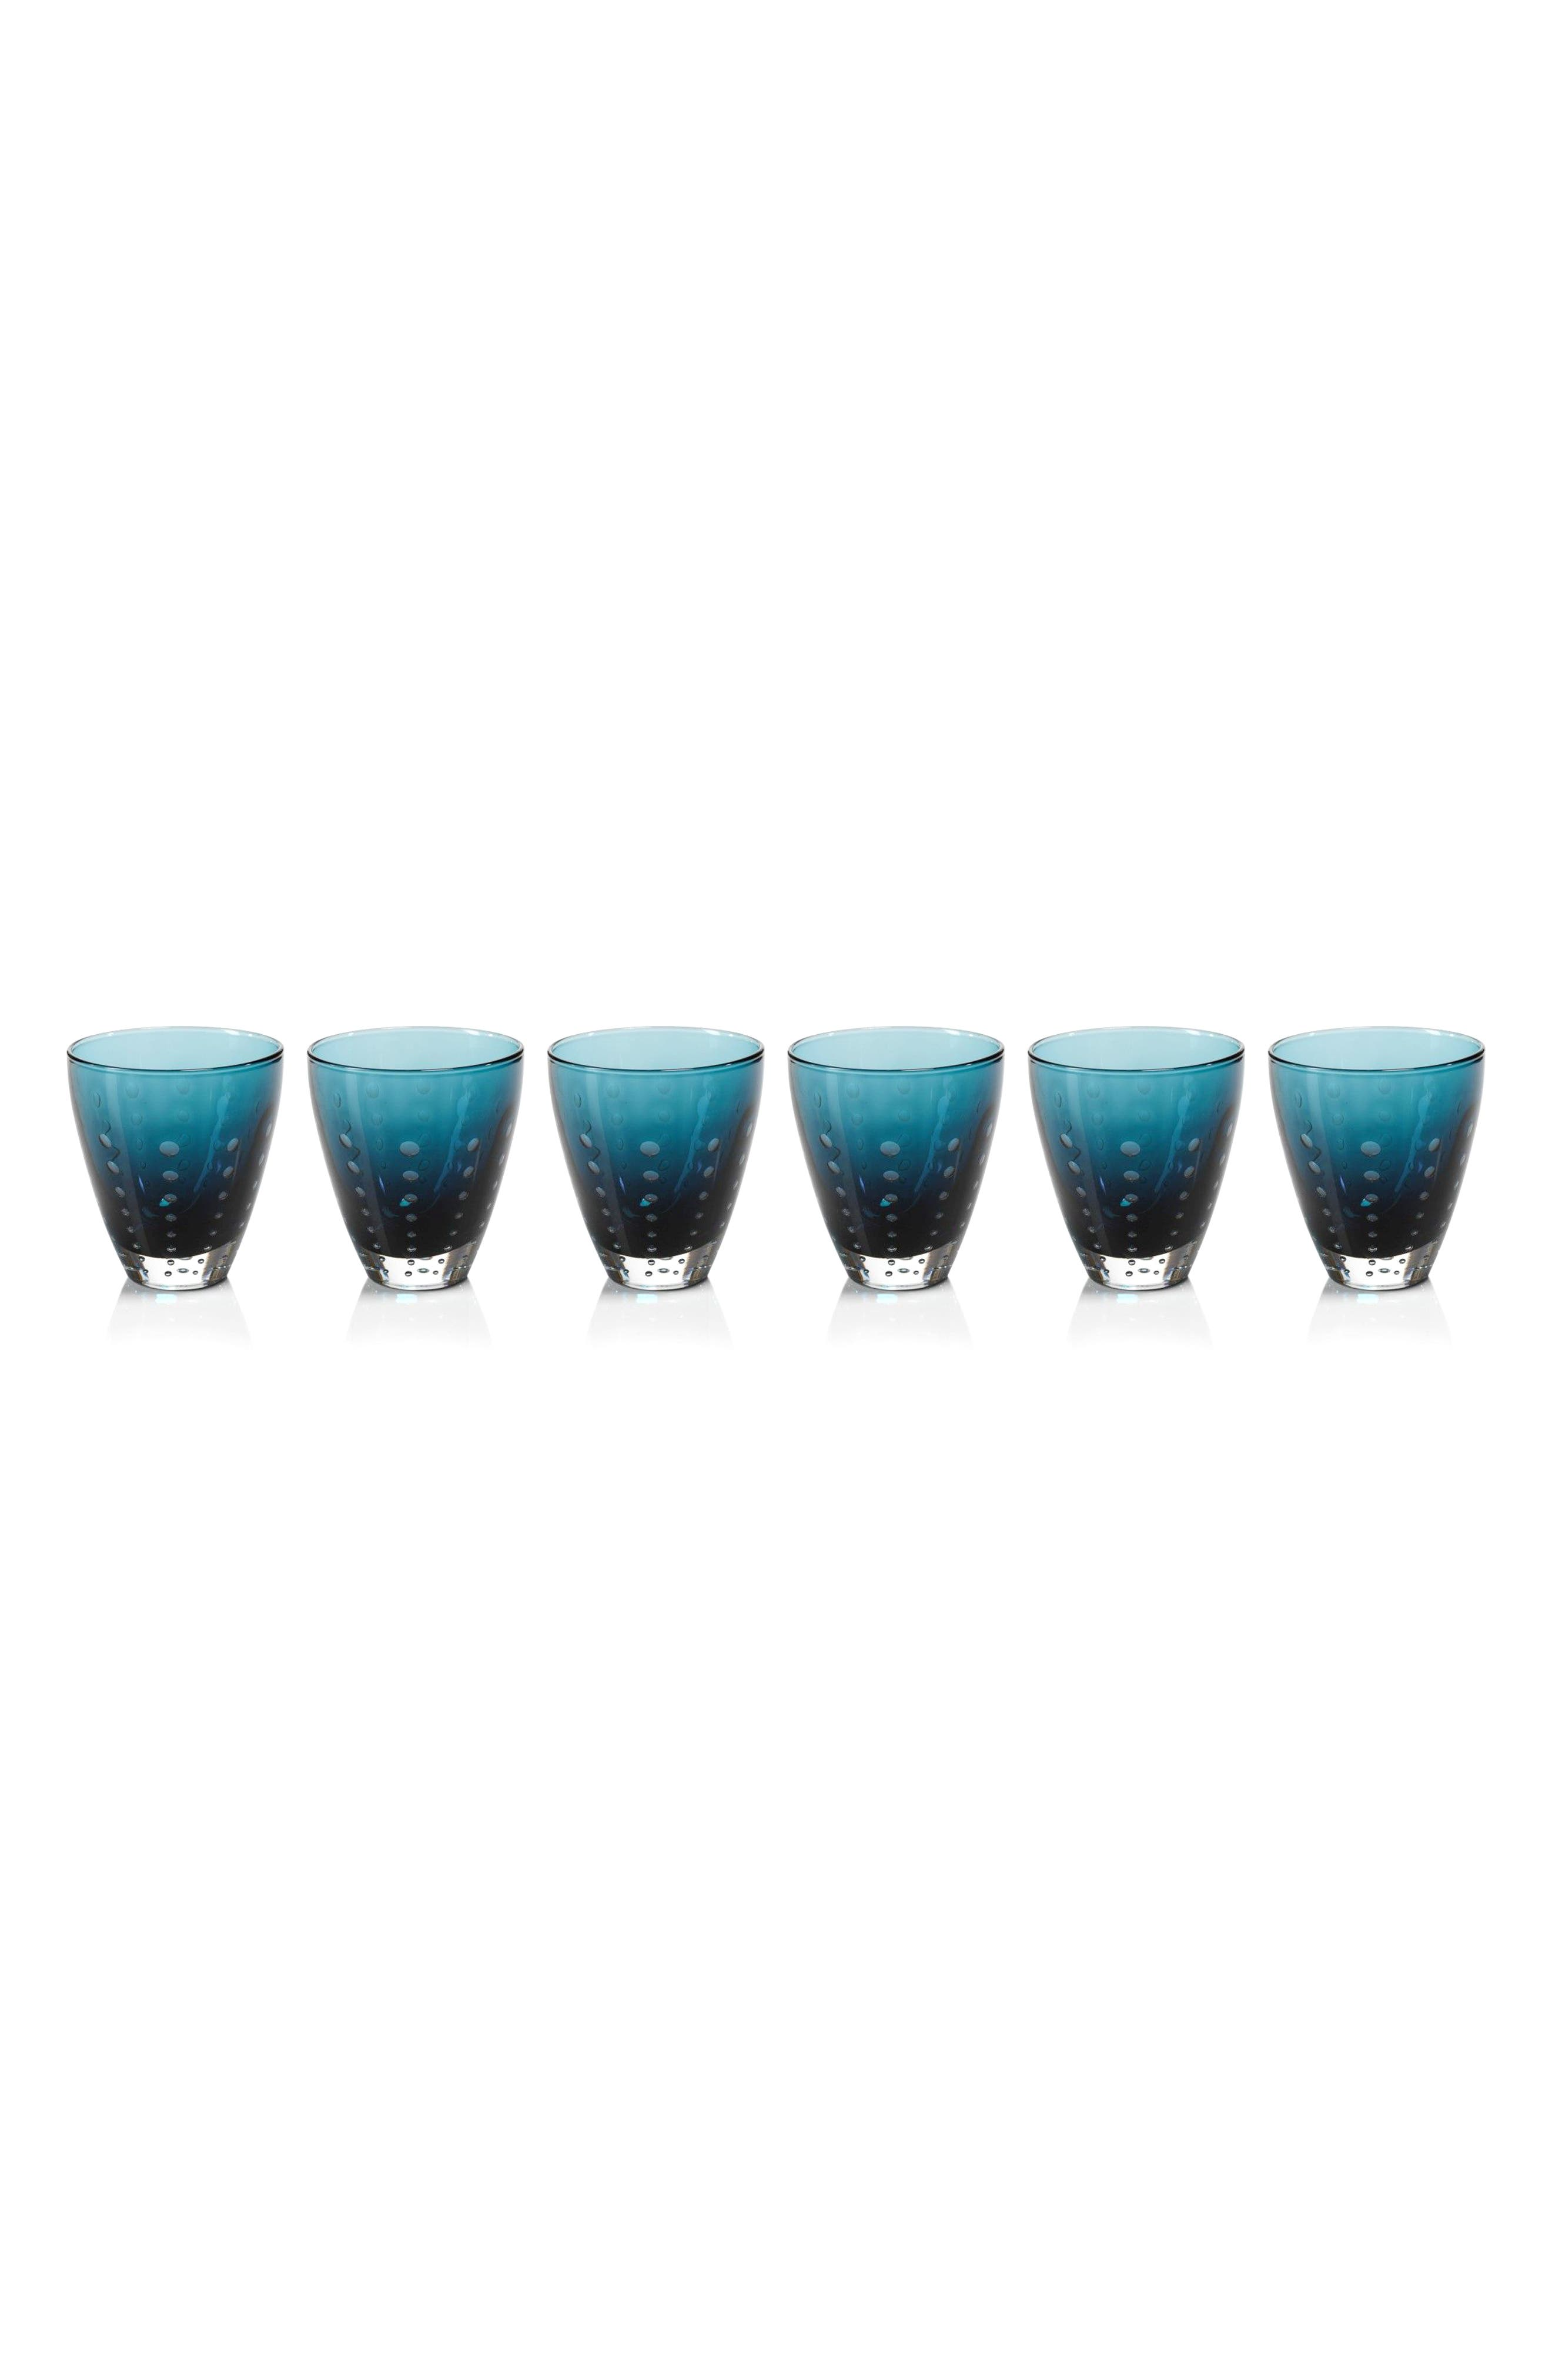 Bubbled Set of 6 Double Old Fashioned Glasses,                             Main thumbnail 1, color,                             Blue